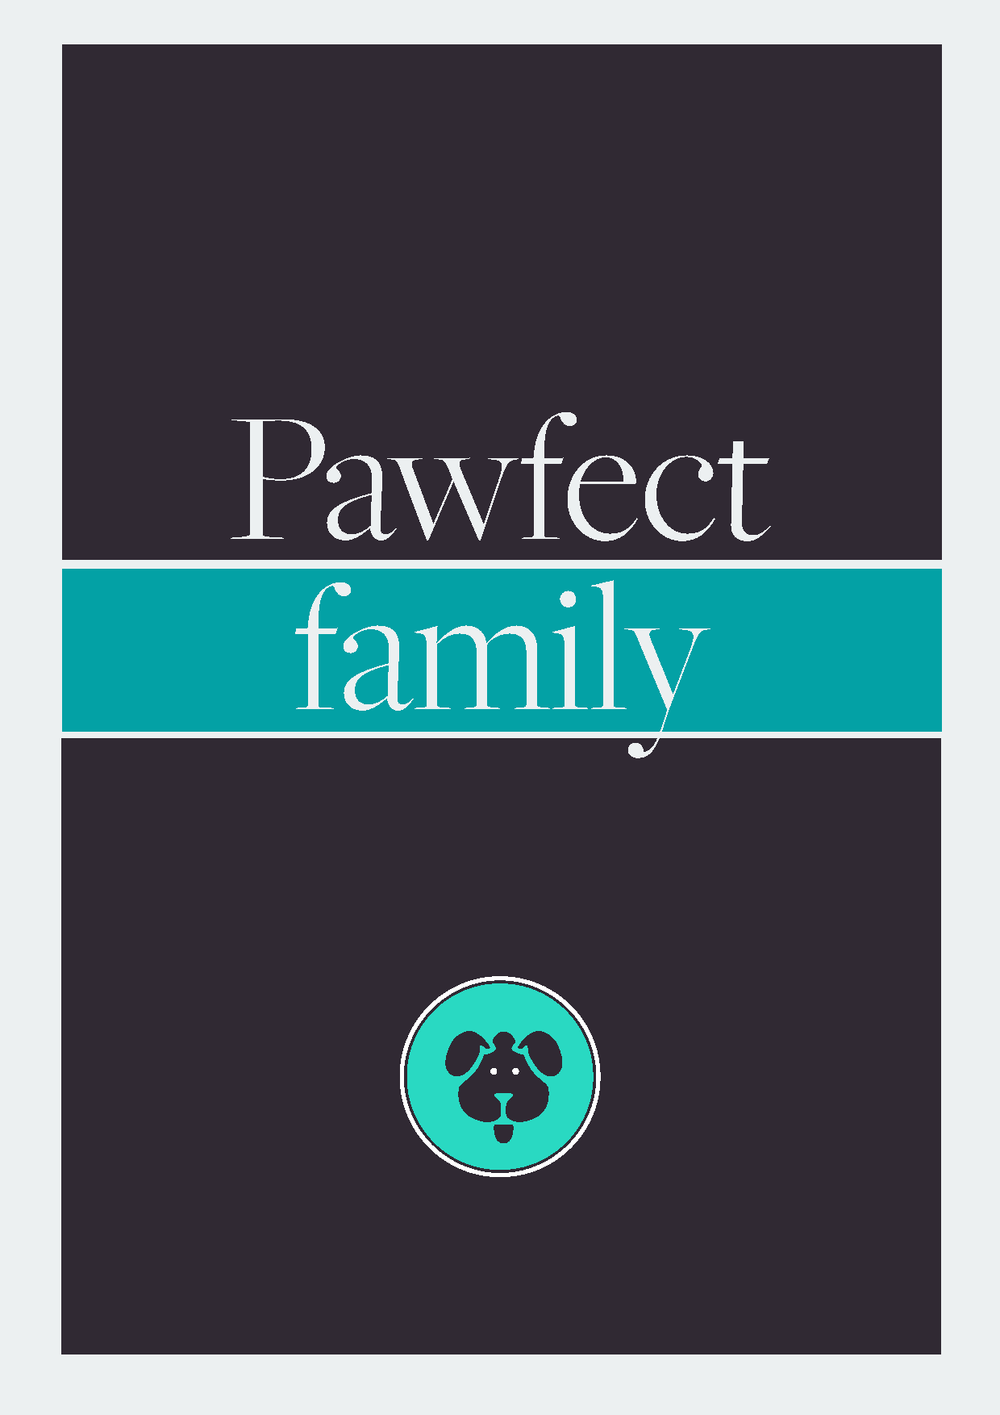 Pawfict dog zesty teal and grey.png